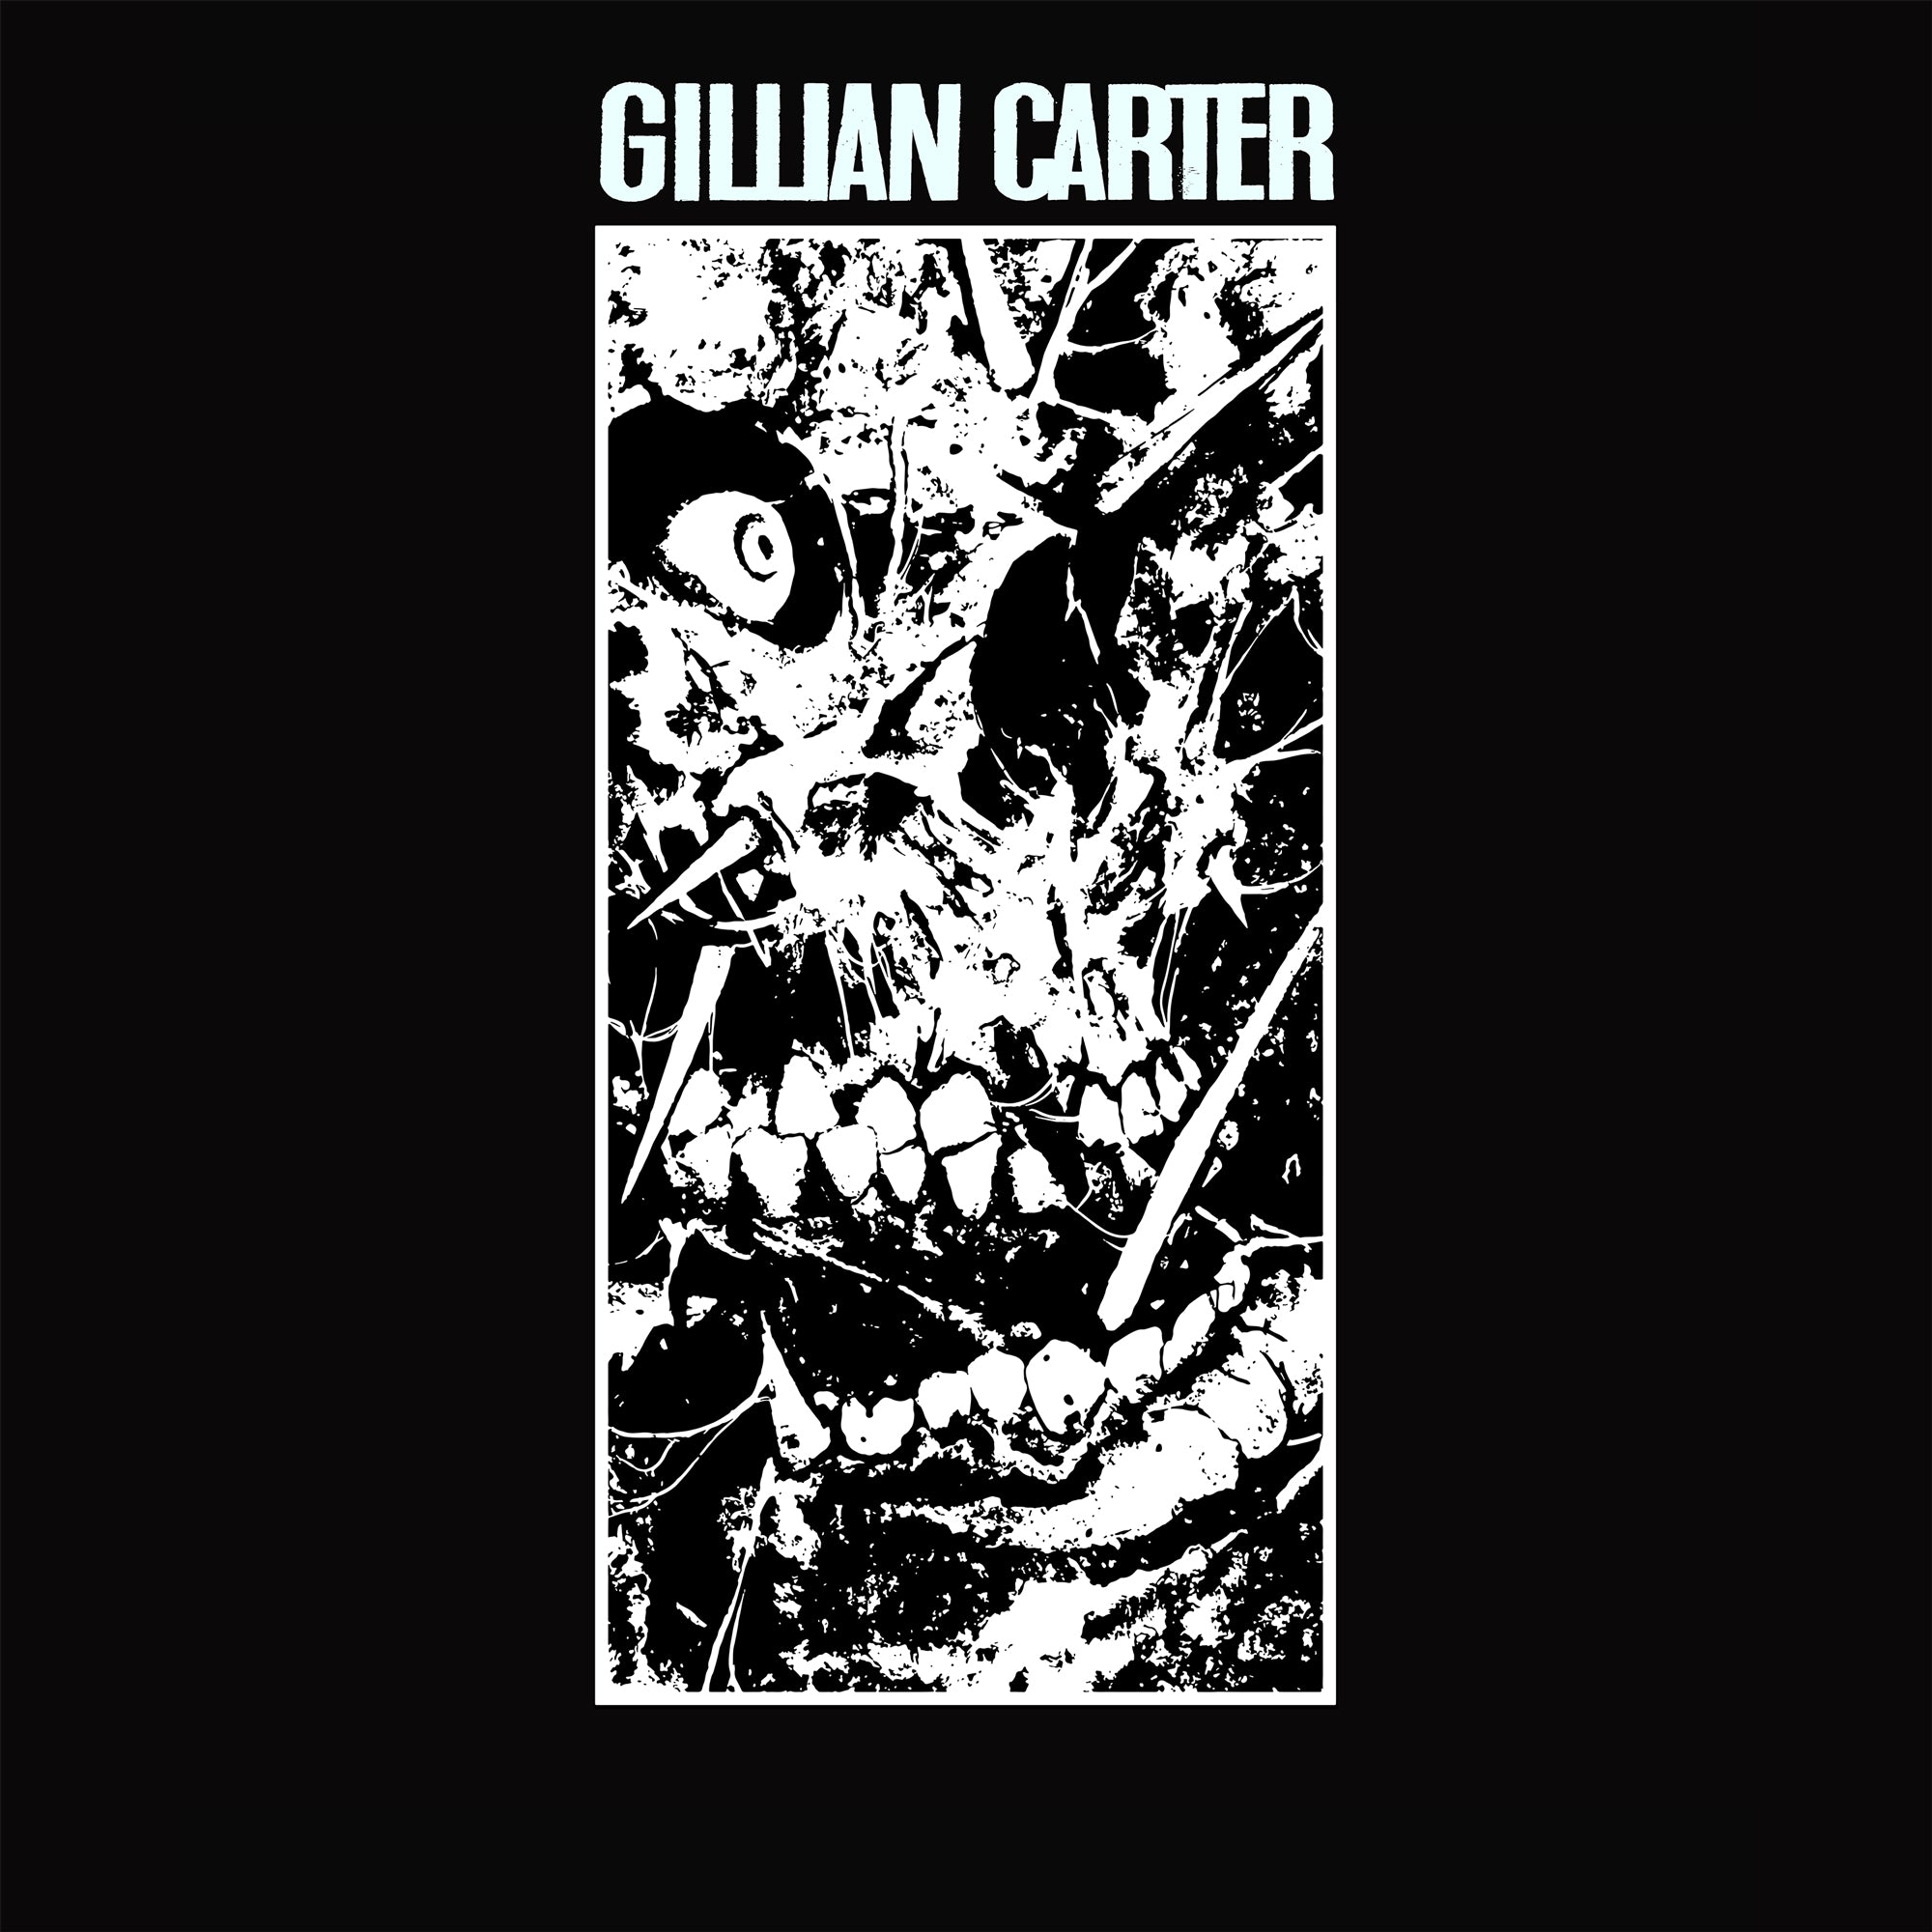 Gillian Carter - Discography Now